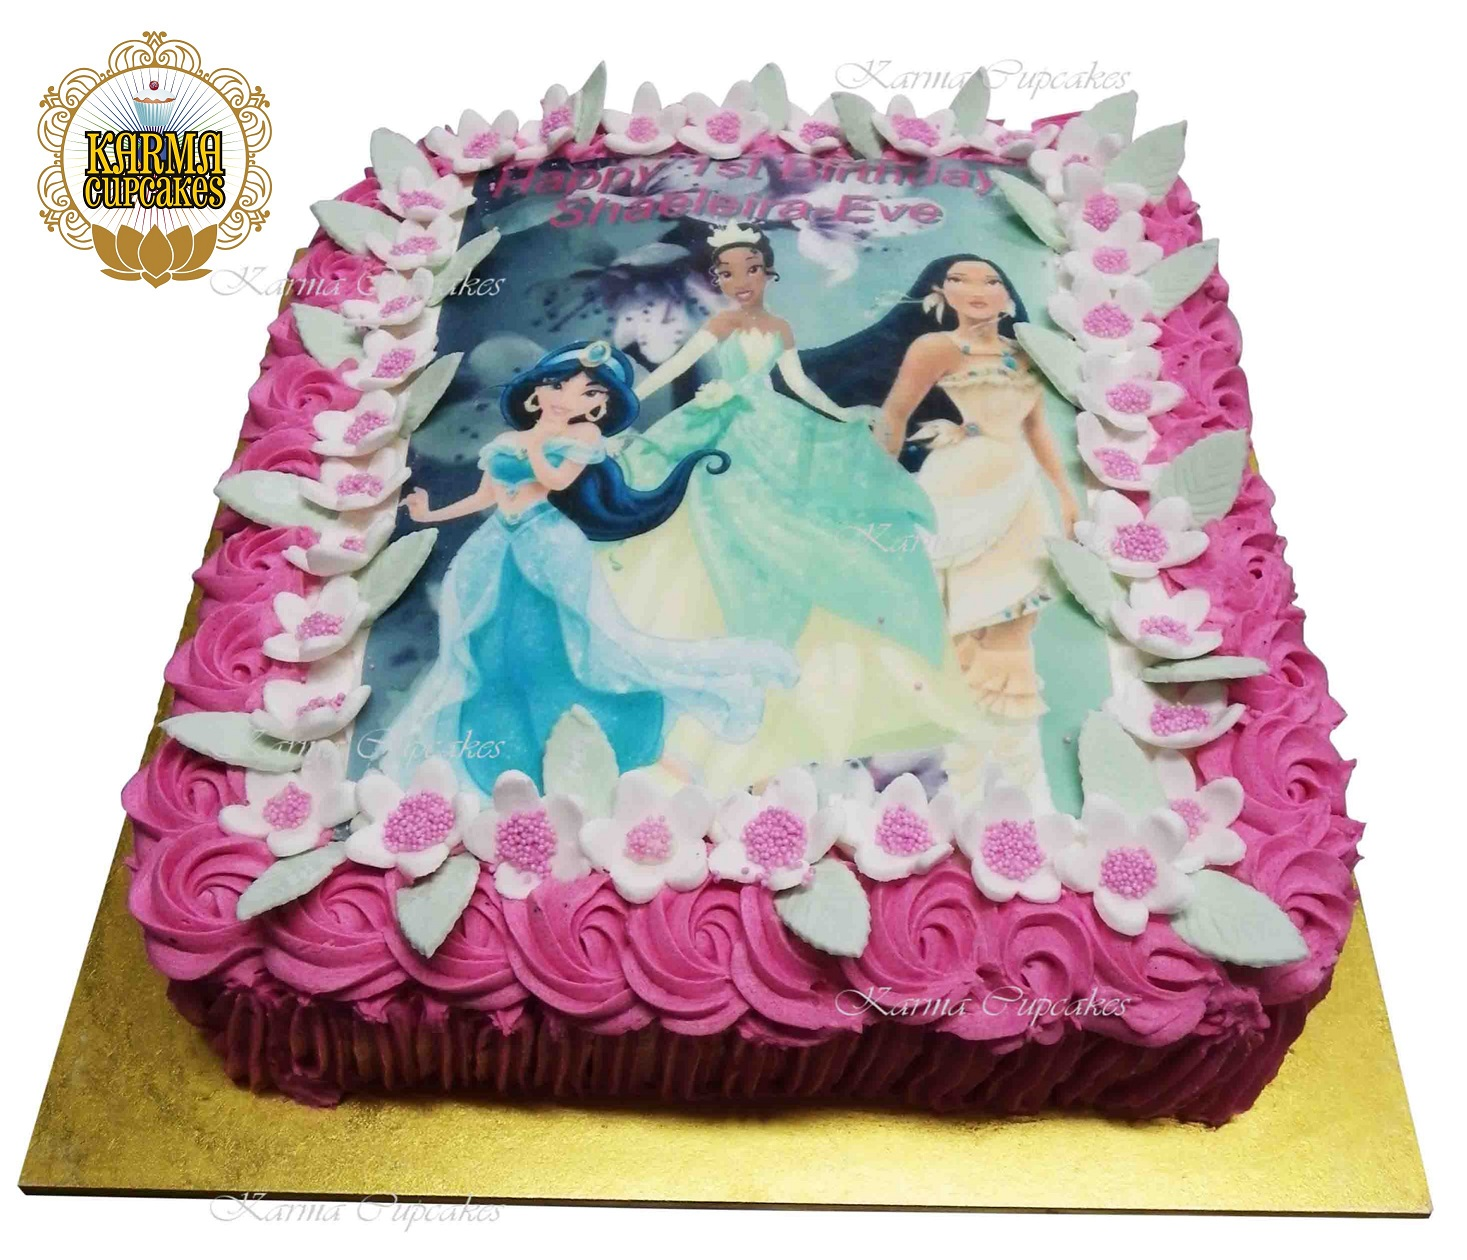 Tremendous Disney Princesses Birthday Cake Personalised Birthday Cards Paralily Jamesorg